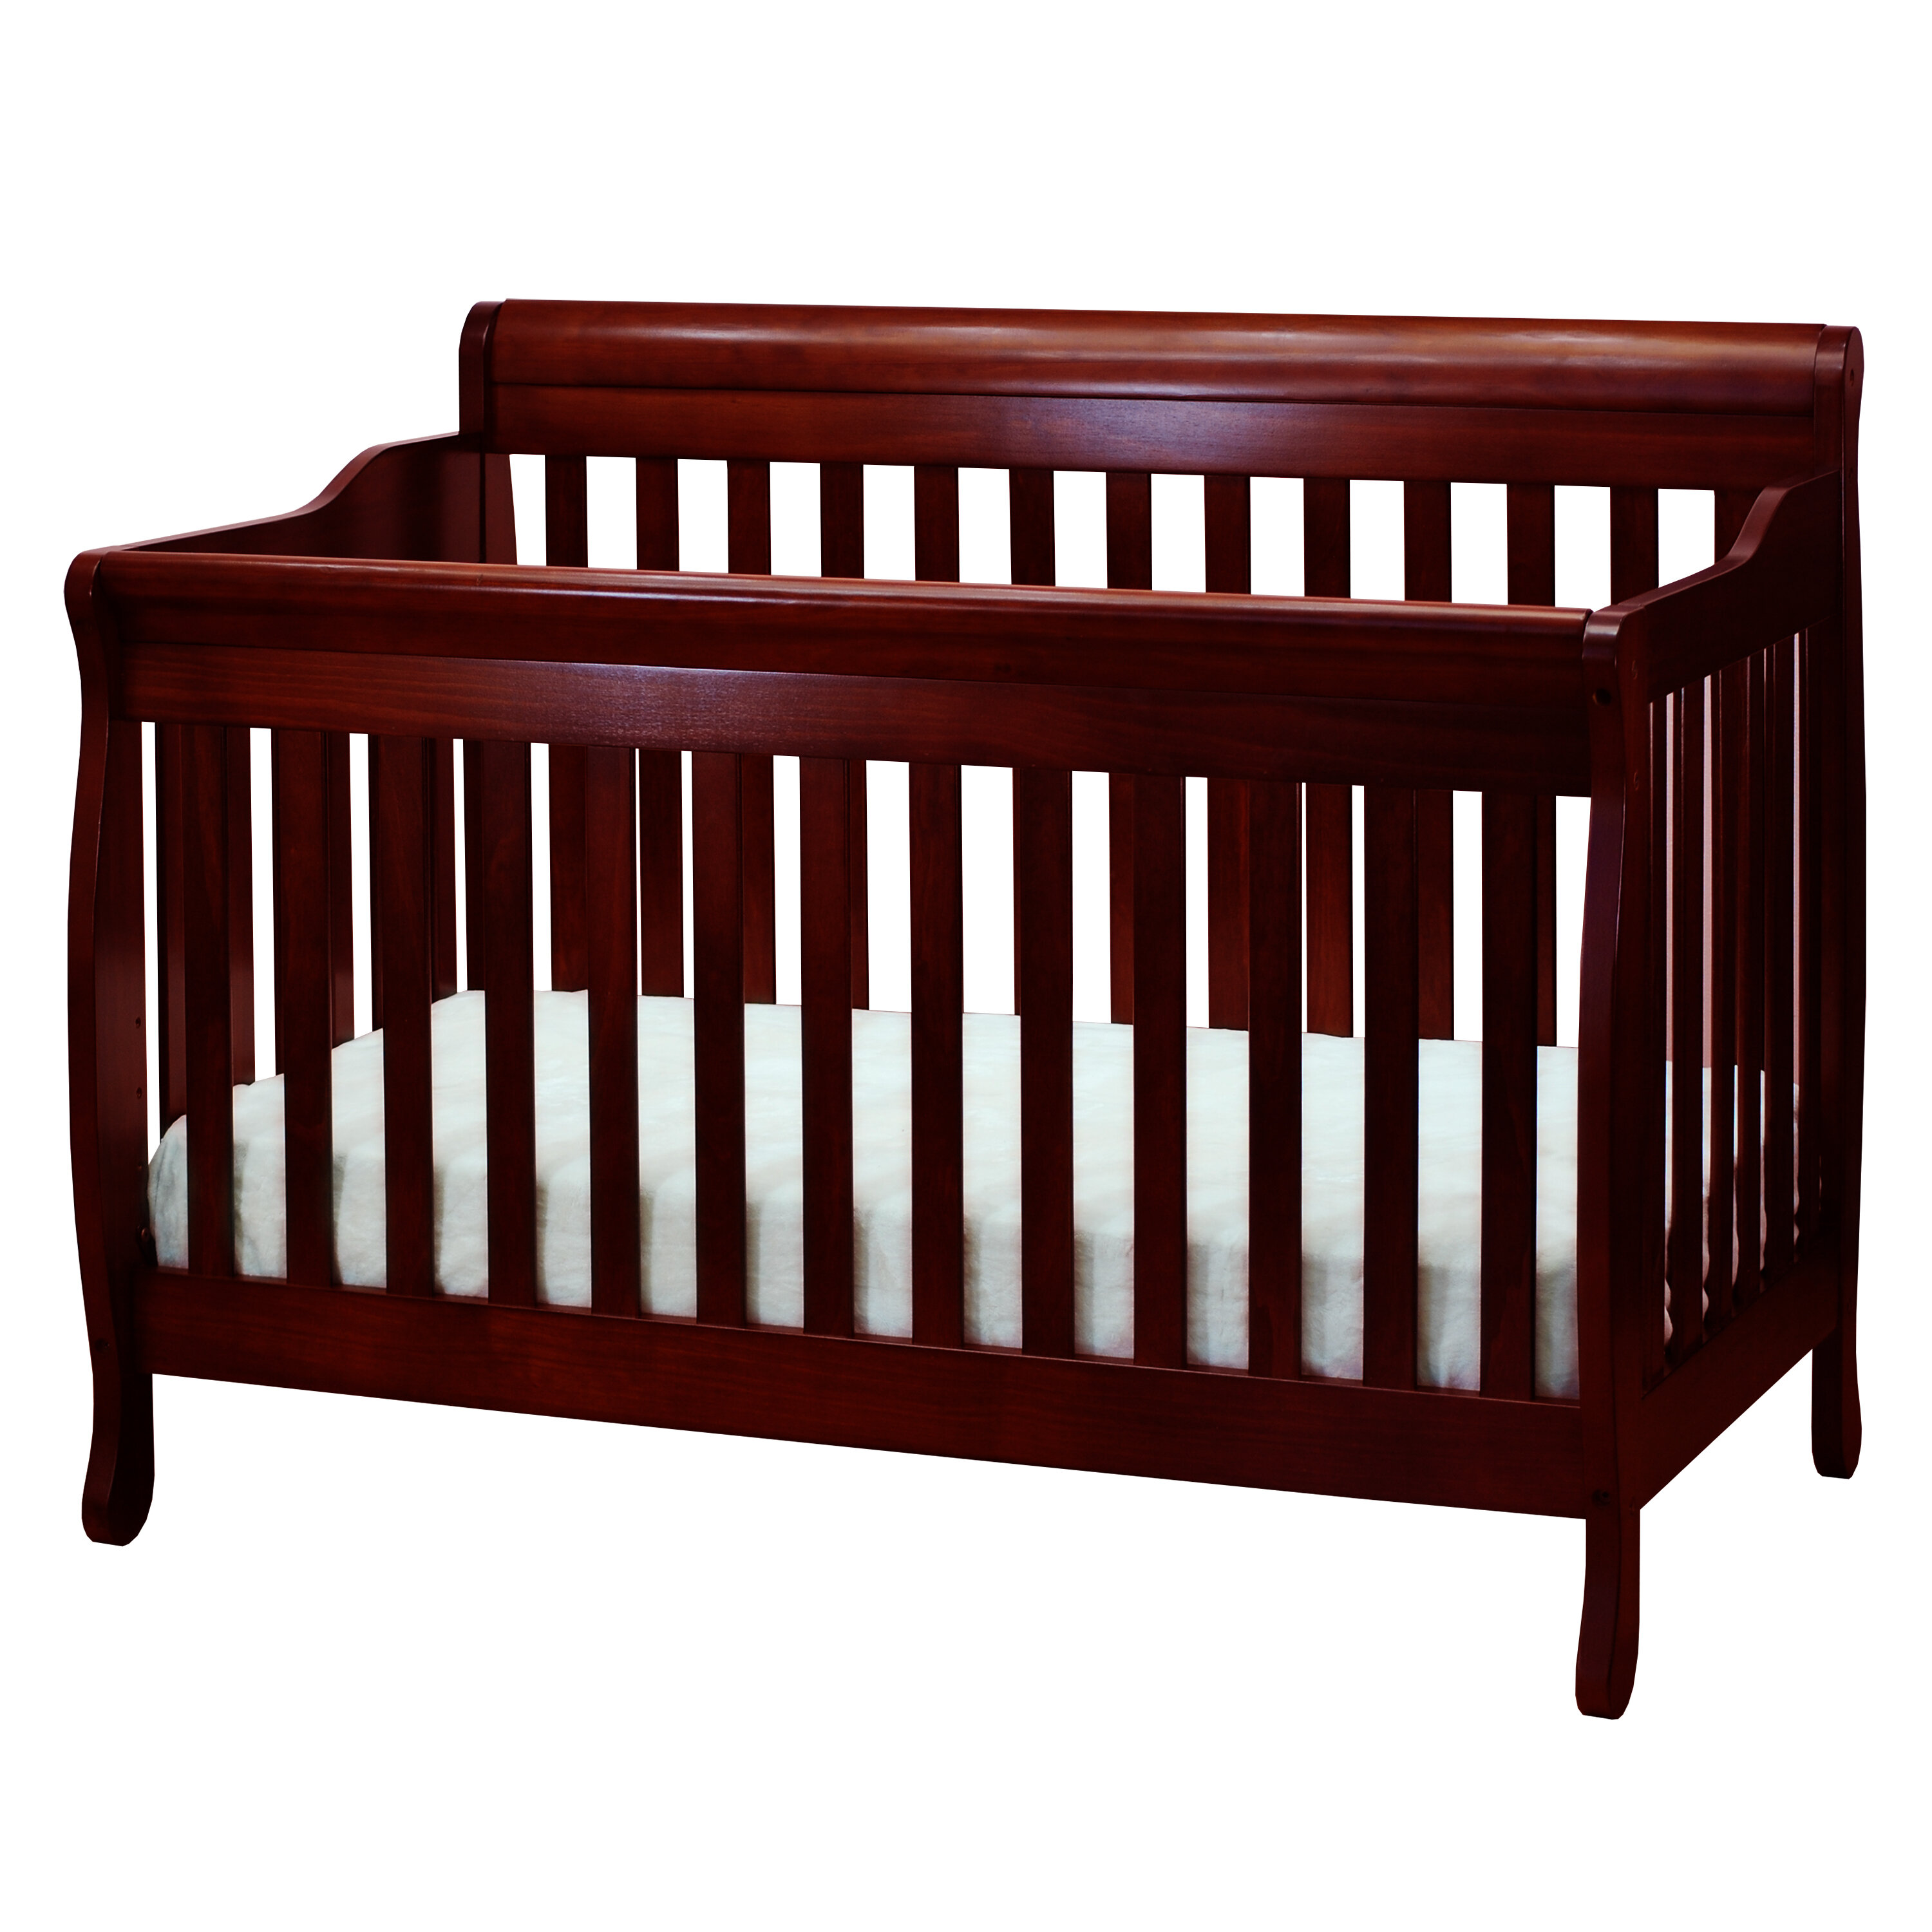 Viv Rae Jaden 4 In 1 Convertible Crib Reviews Wayfair